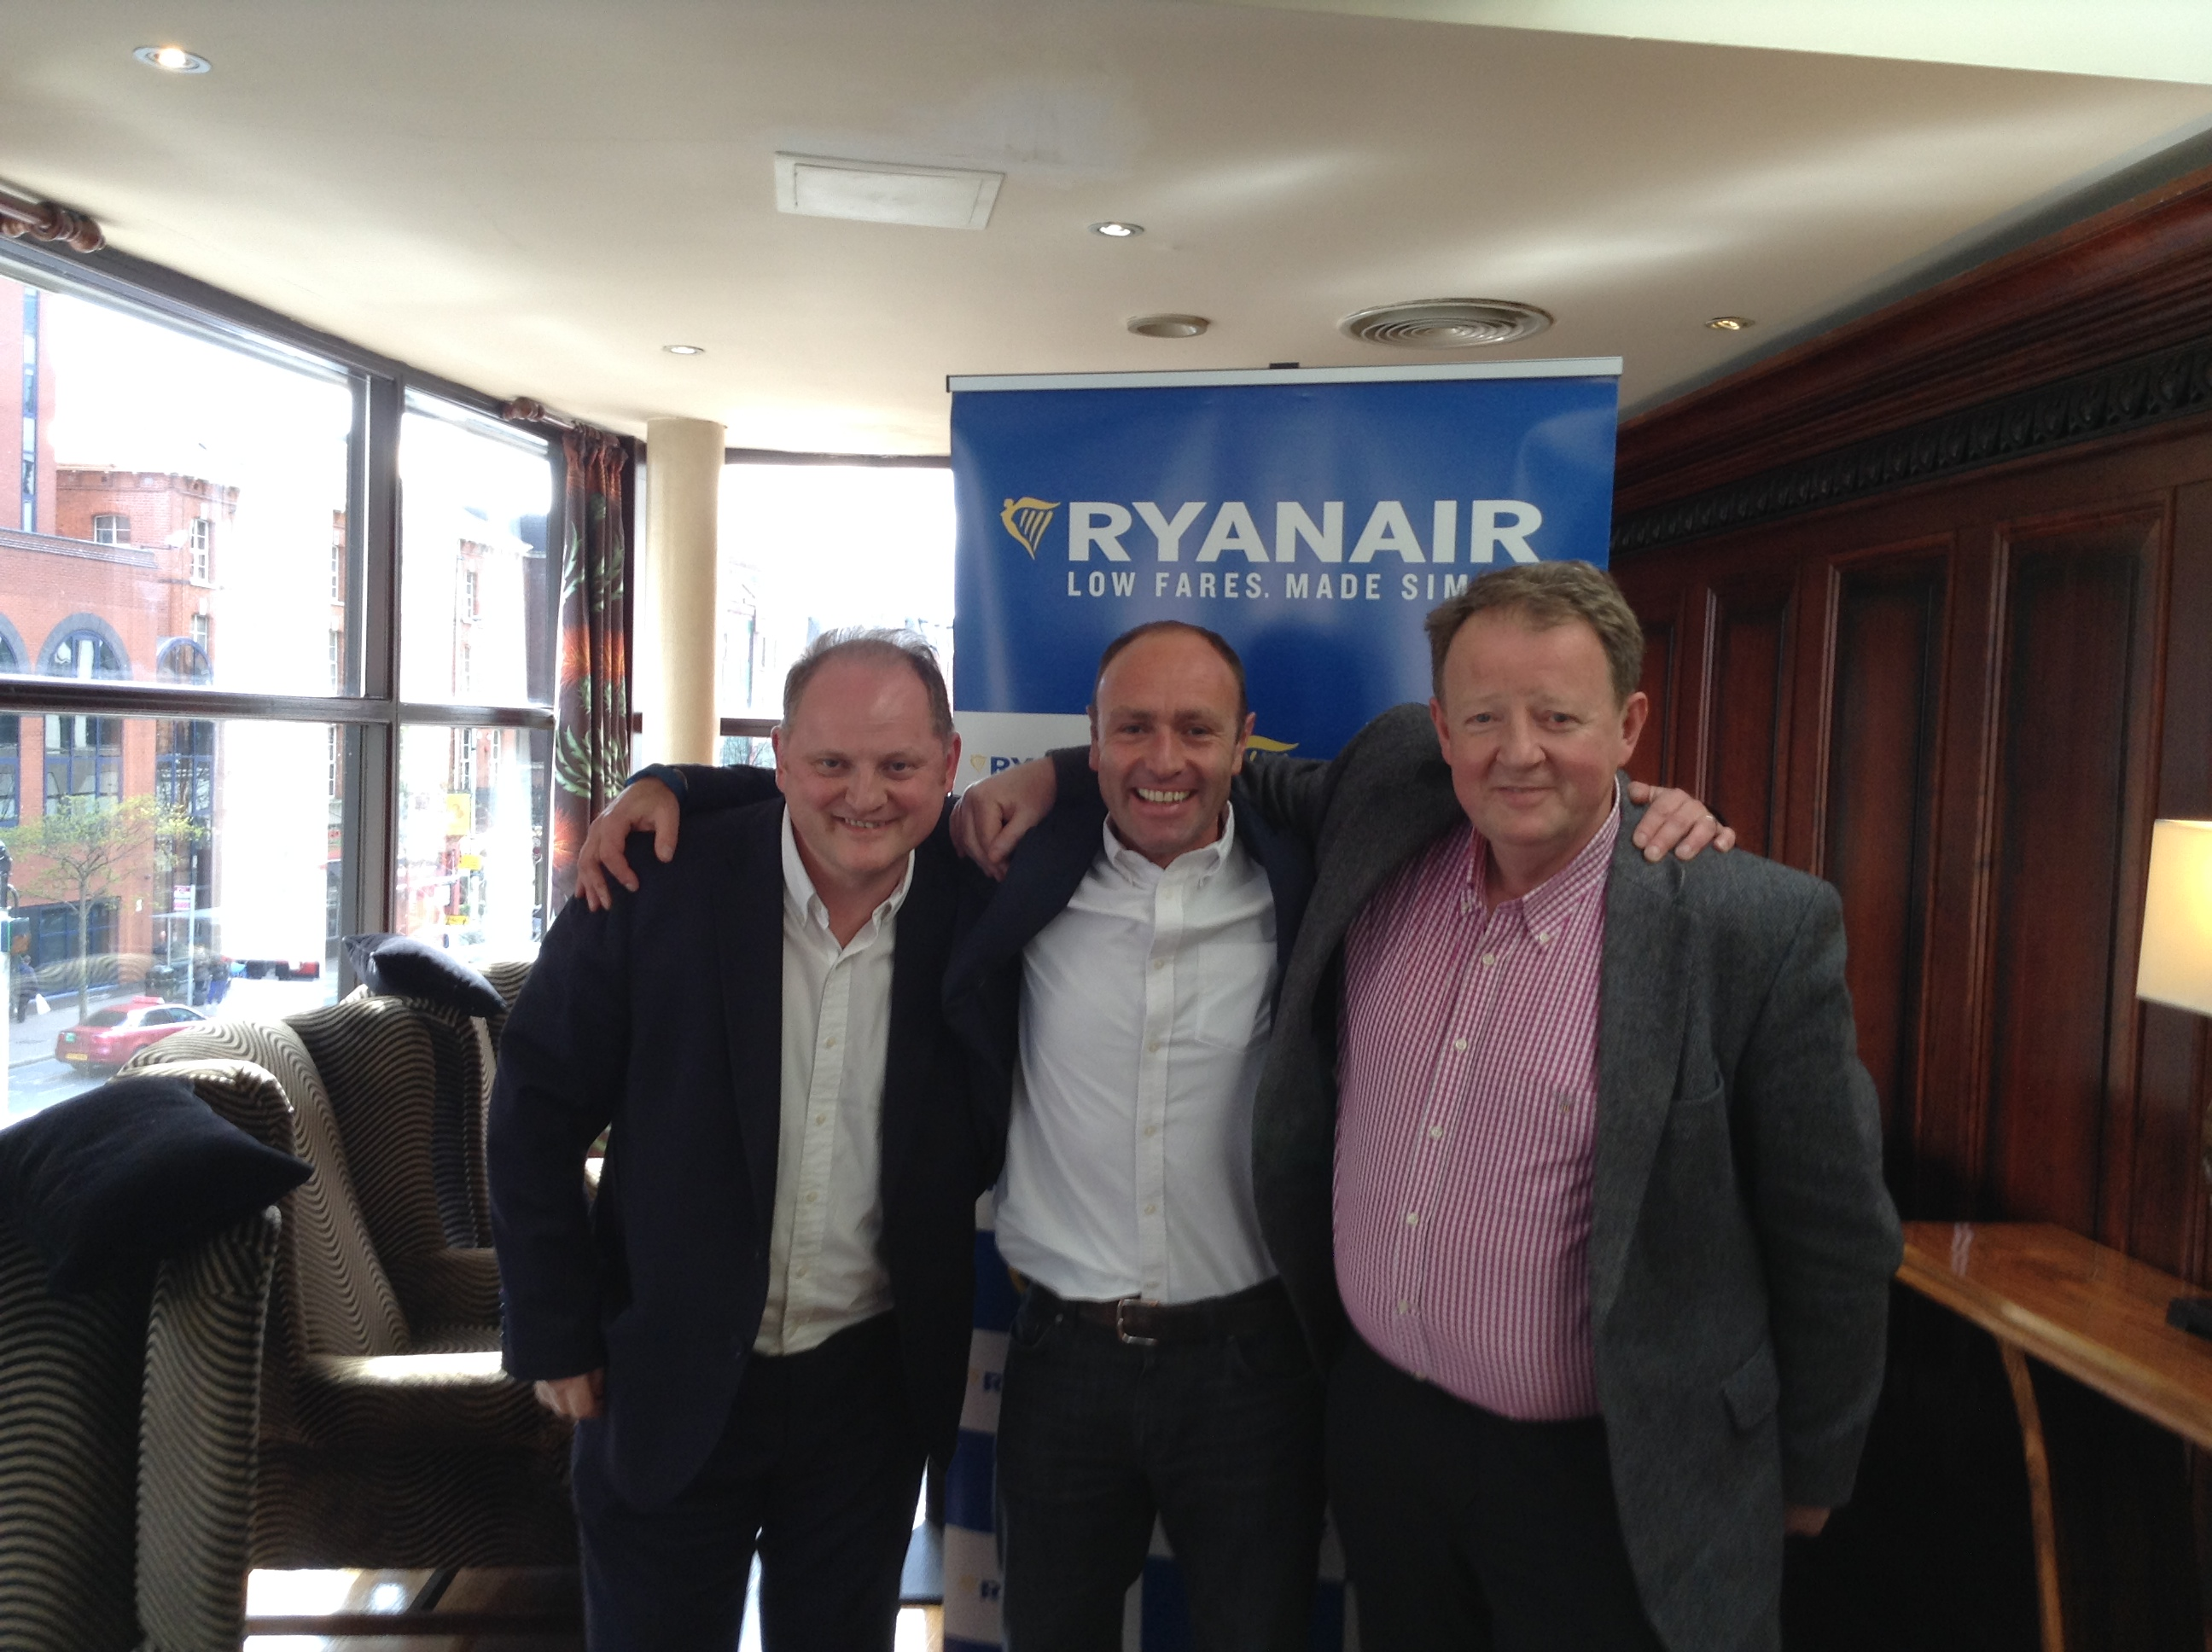 RYANAIR LAUNCHES NEW BELFAST ROUTES TO GDANSK, WARSAW & WROCLAW